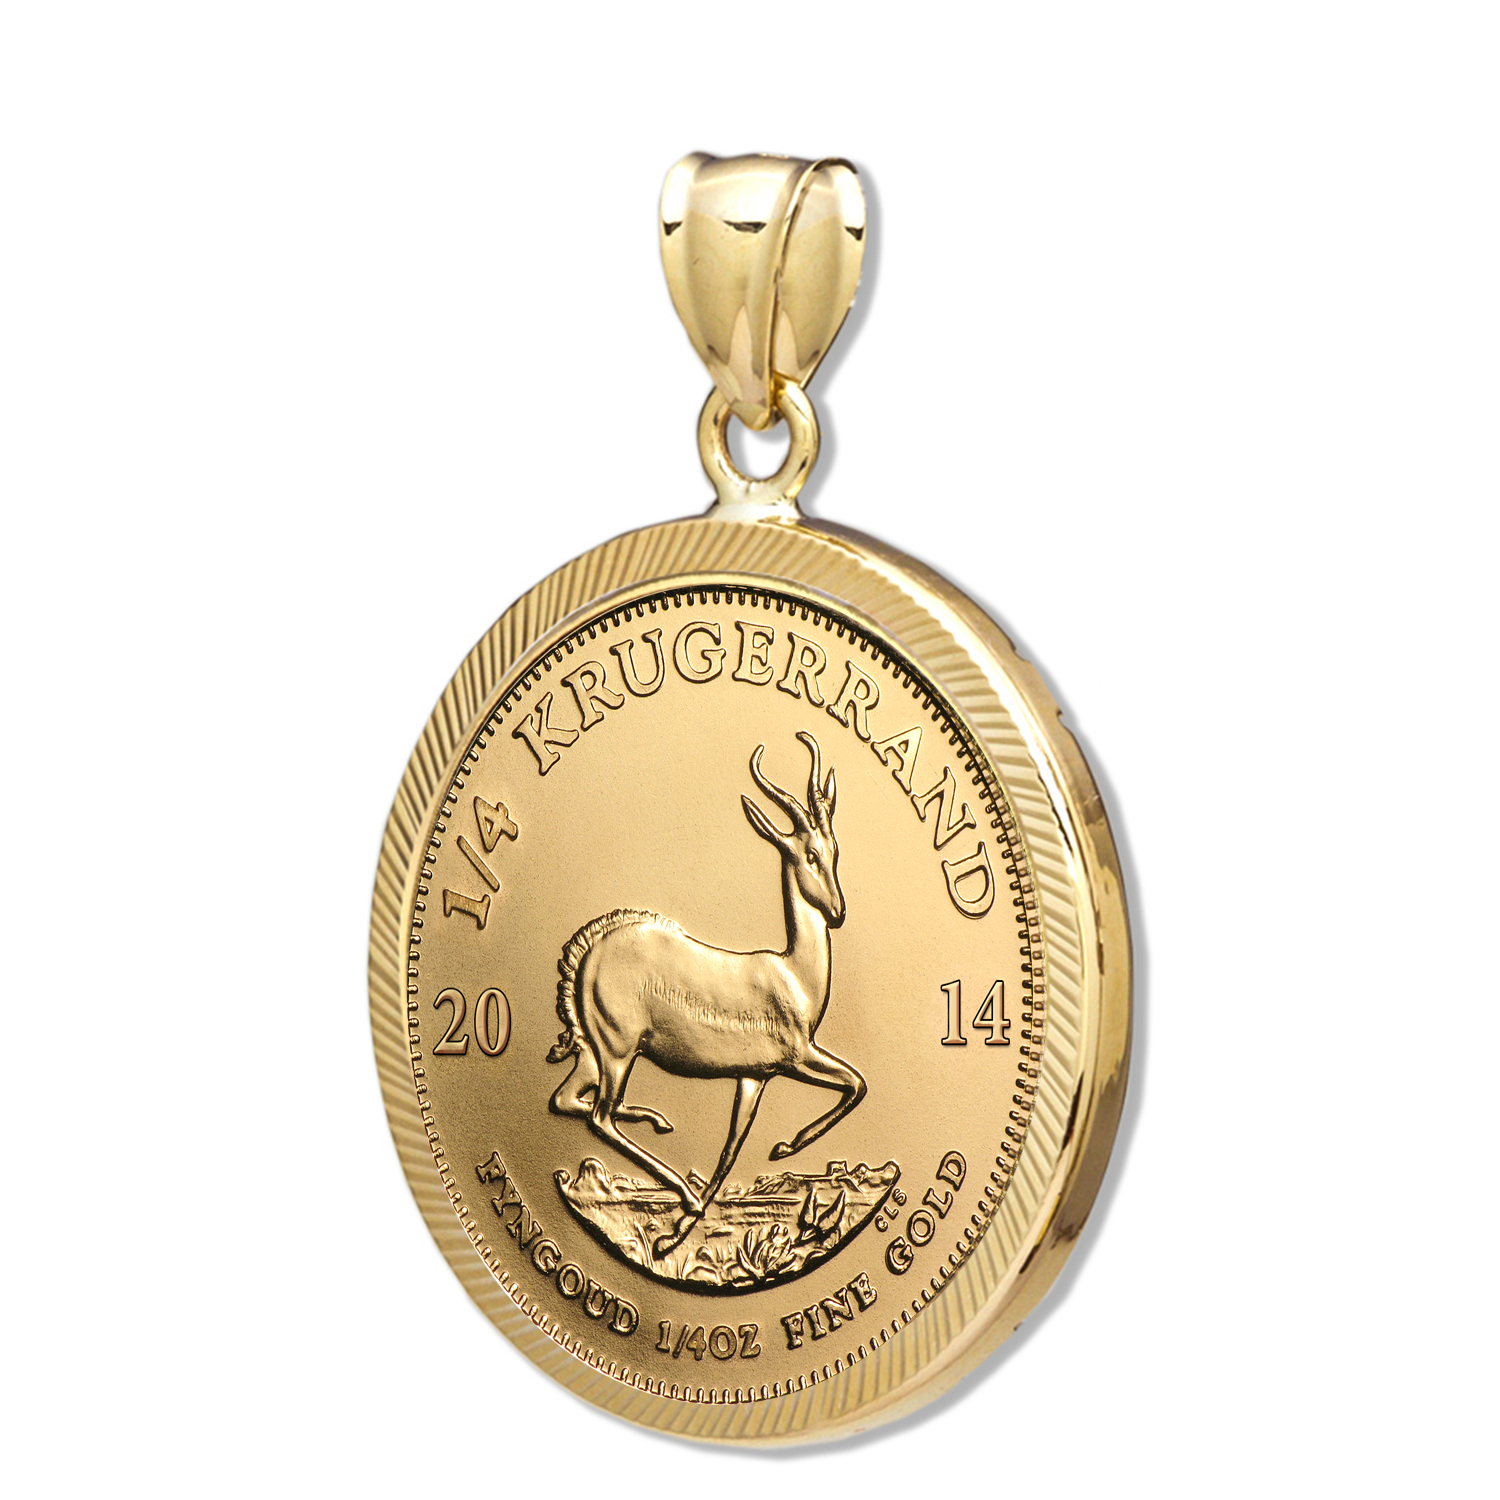 2014 1/4 oz Gold Krugerrand Pendant (Diamond-Prong Bezel)